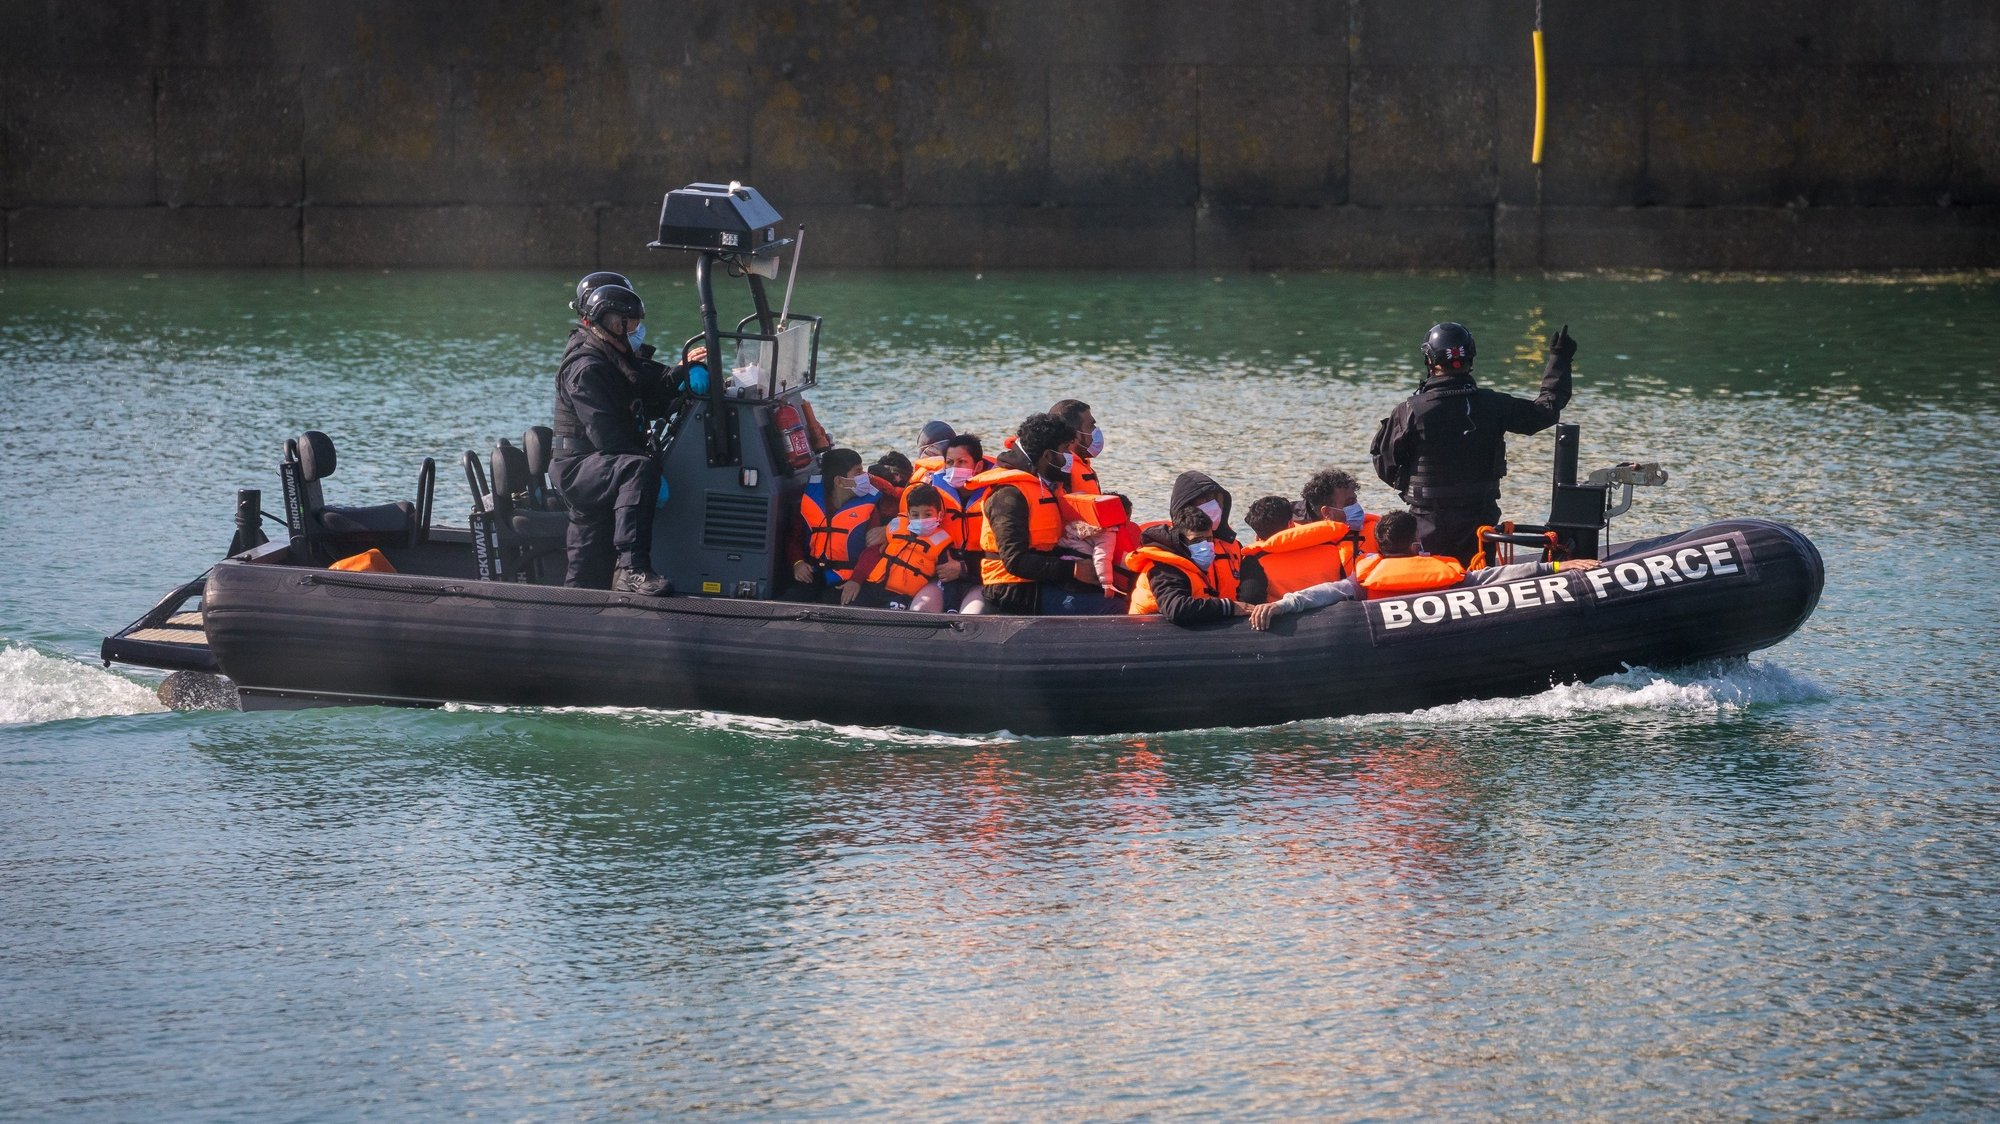 epa09358012 A boat from Britain's Border Force (BF) transports a group of people thought to be migrants, including children, who were found in the English Channel off the coast of Dover, in Dover, Kent, Britain, 22 July 2021. Britain and France are continuing ongoing talks in a bid to resolve the migrant crisis in the English Channel as migrants continue to arrive along the coast of the UK in their quest for asylum.  EPA/VICKIE FLORES